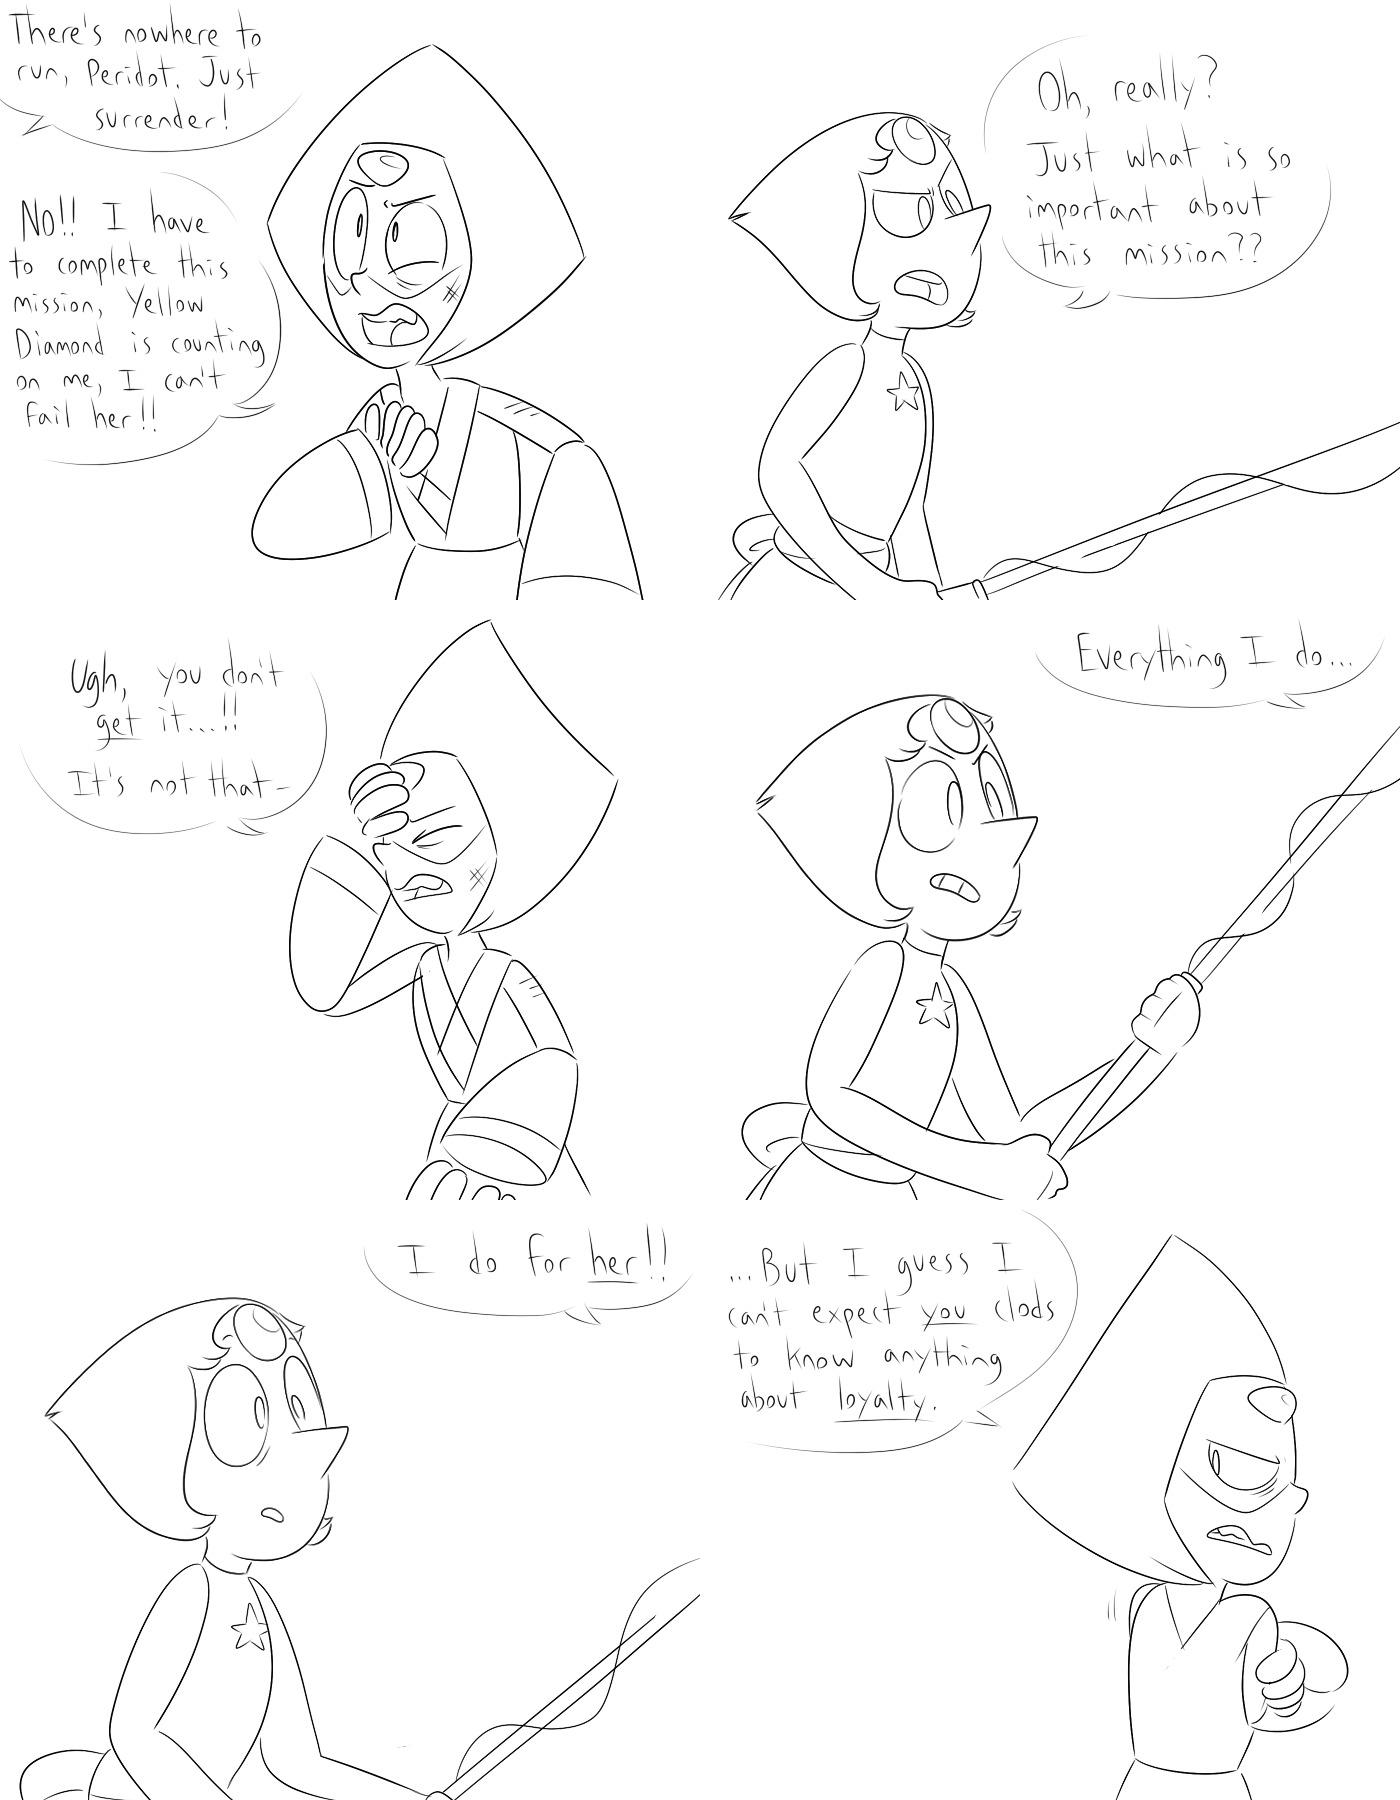 what if pearl/rose and peridot/yd parallels amirite